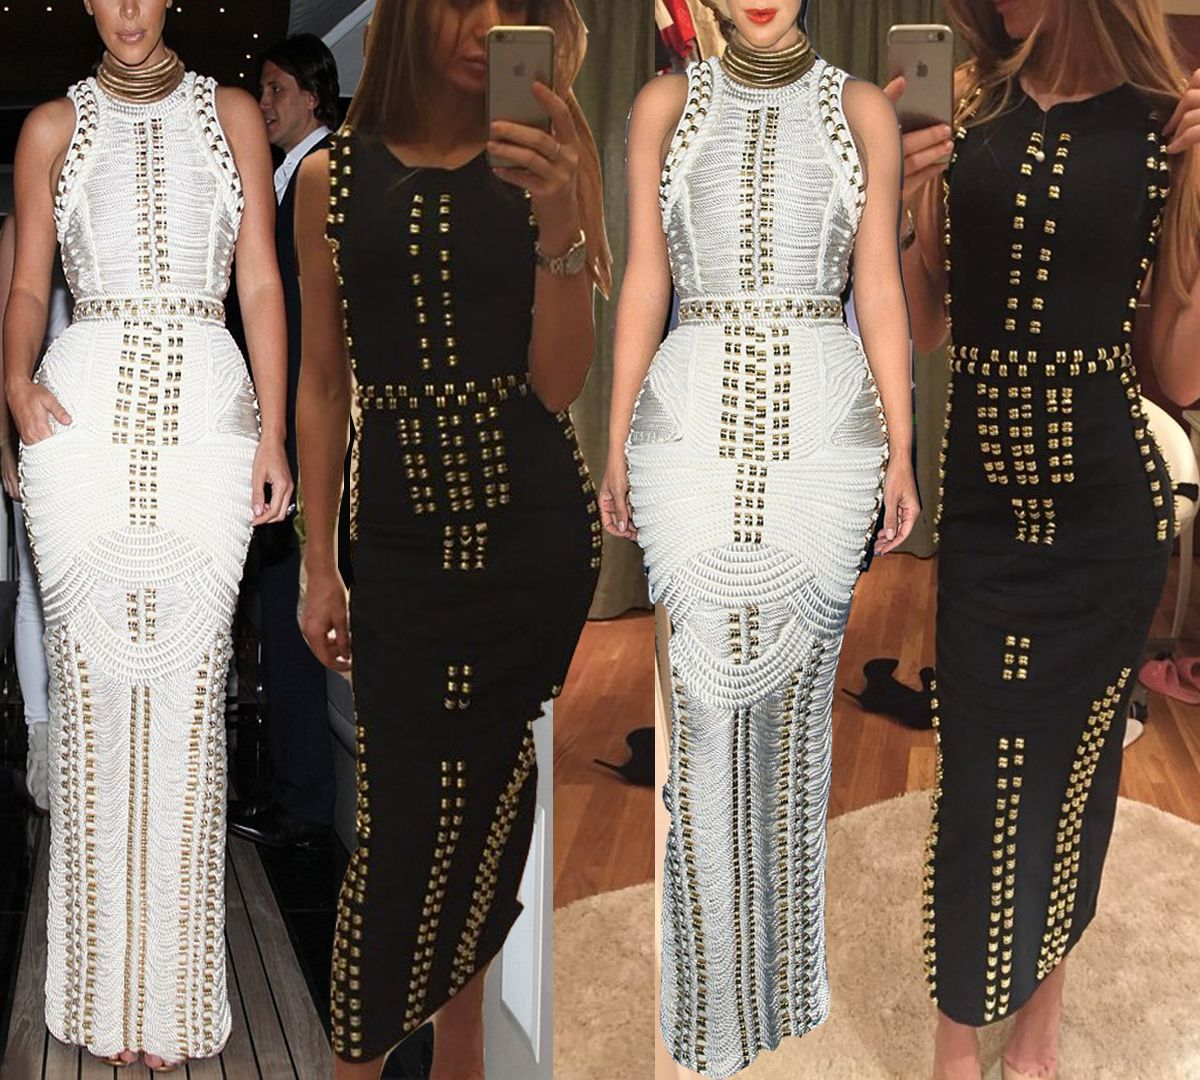 Black or White? Shop exclusive LUXE collection 'Gold Beaded Sleeveless #Boydcon Dress' on fashionfrenzzie.com  #fashionfrenzzie